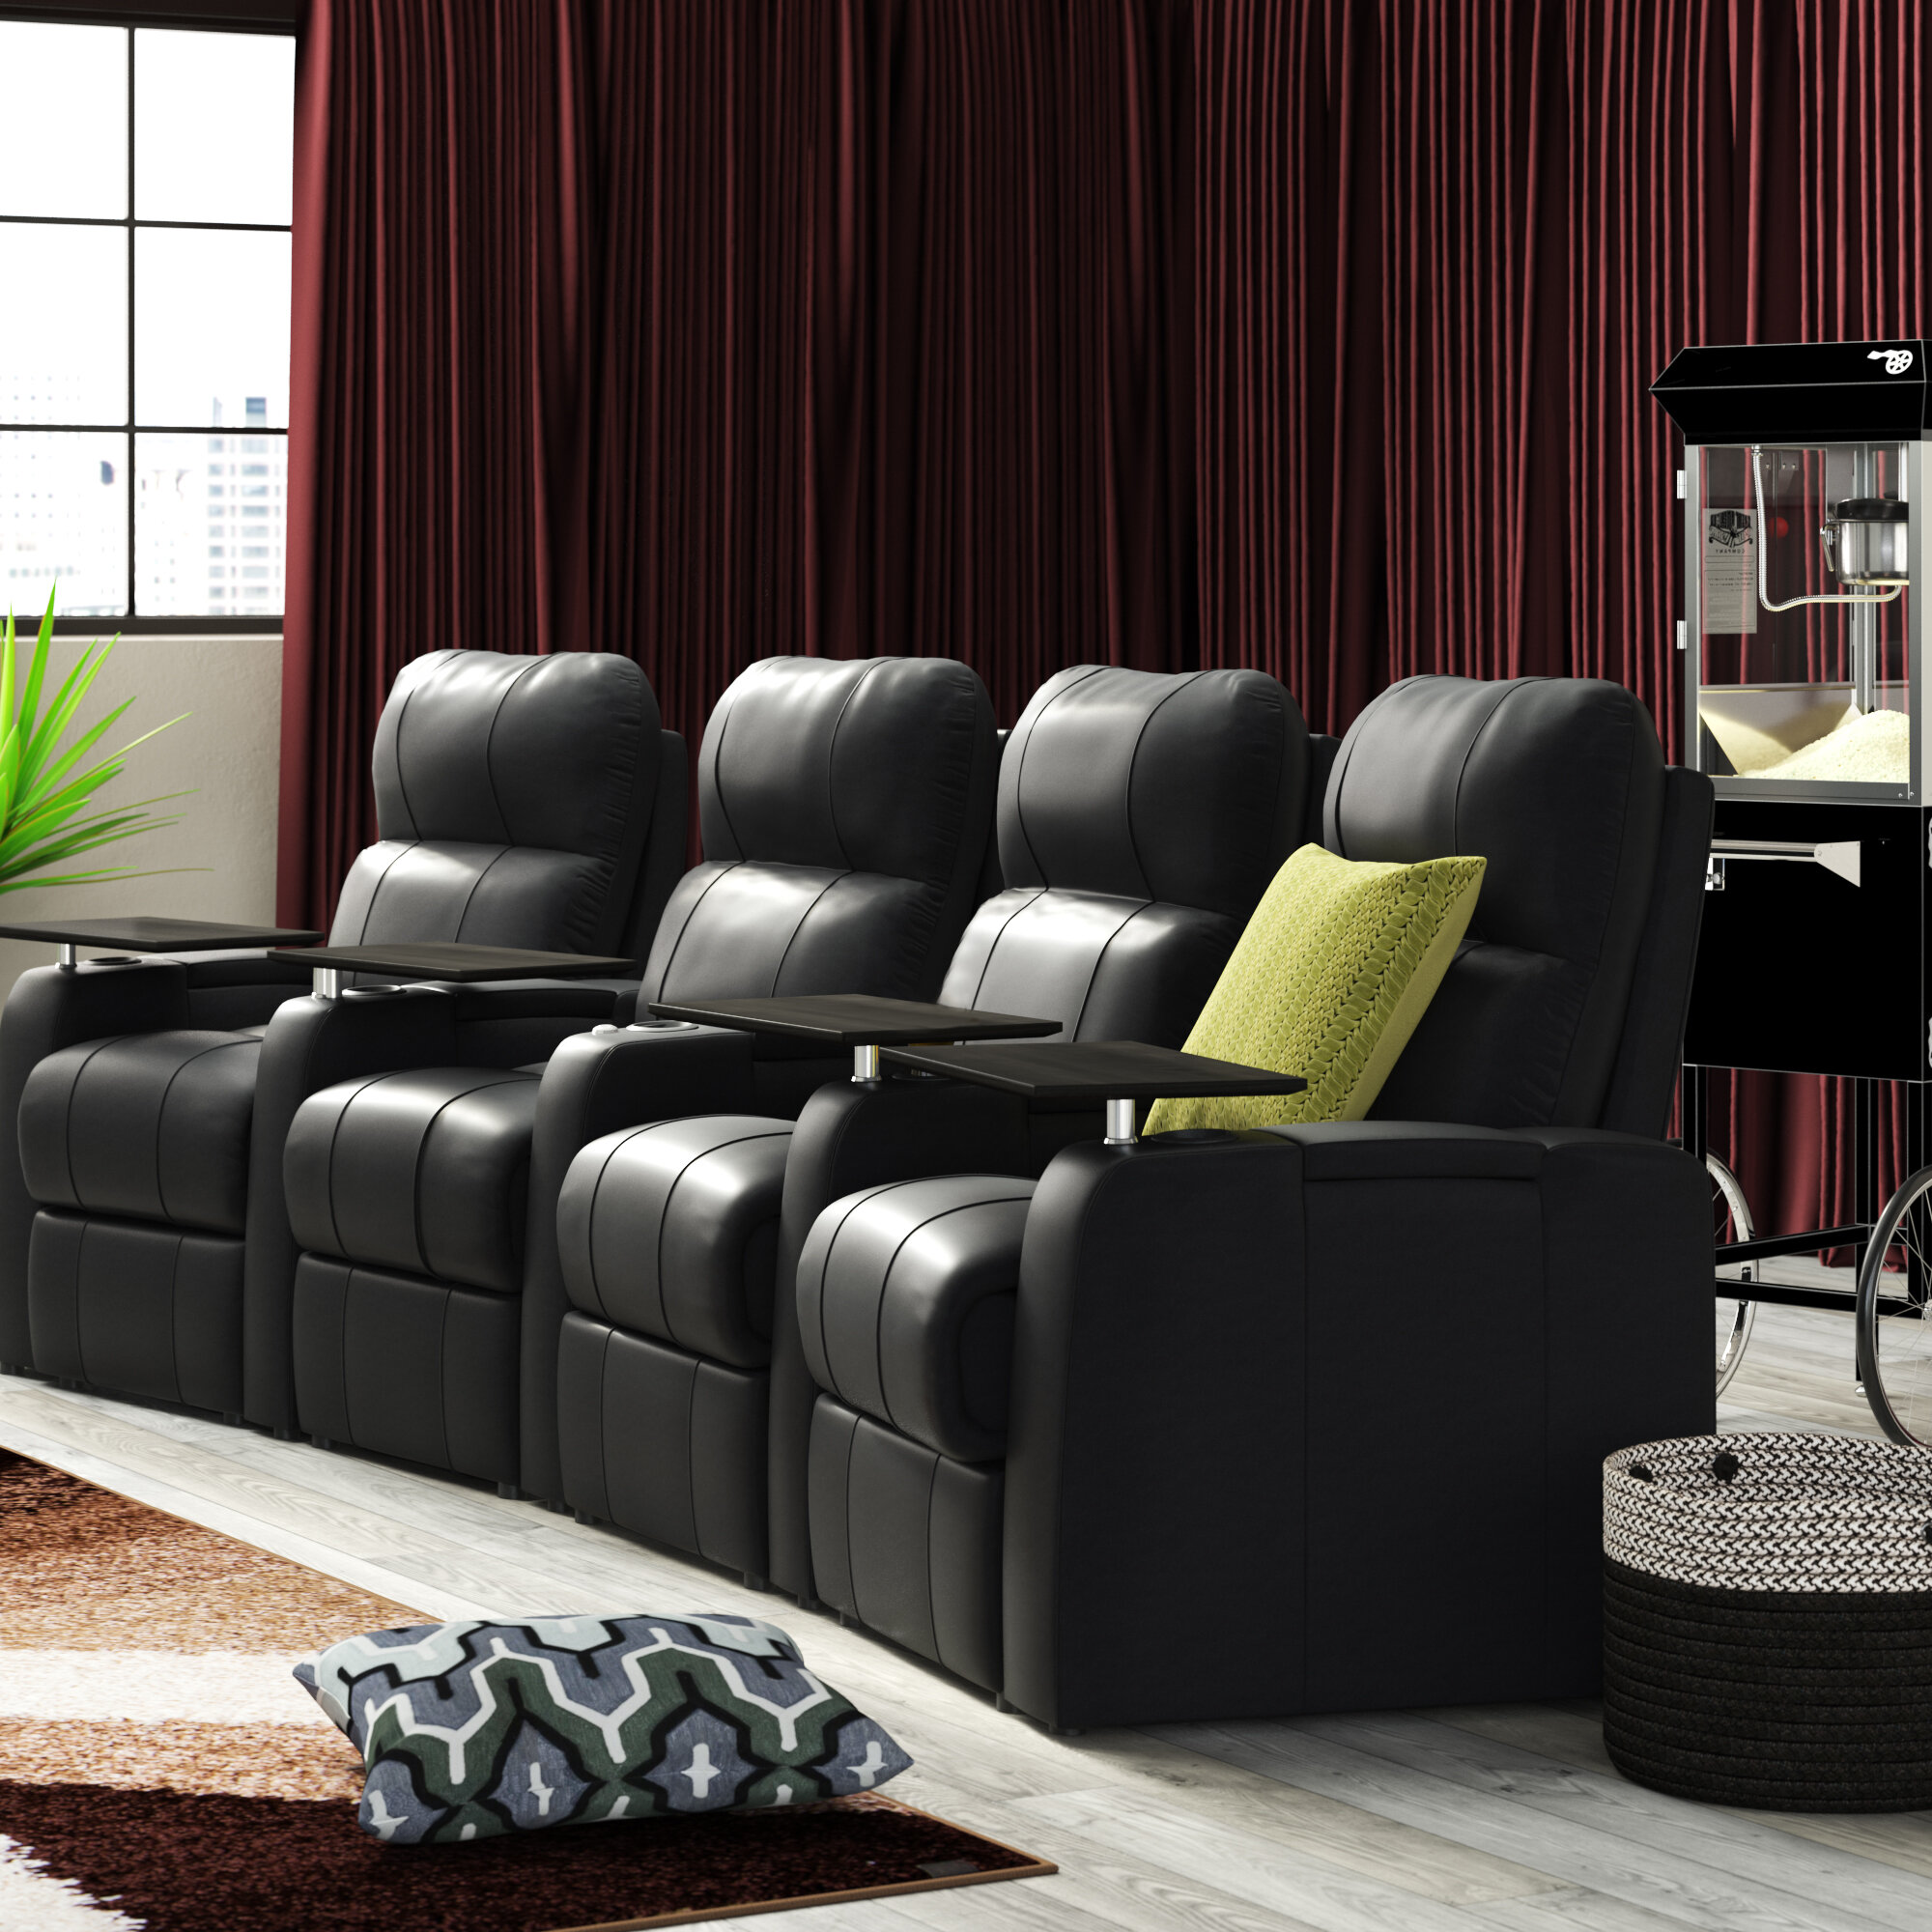 Laude Run Leather Home Theater Row Seating Of 4 Reviews Wayfair